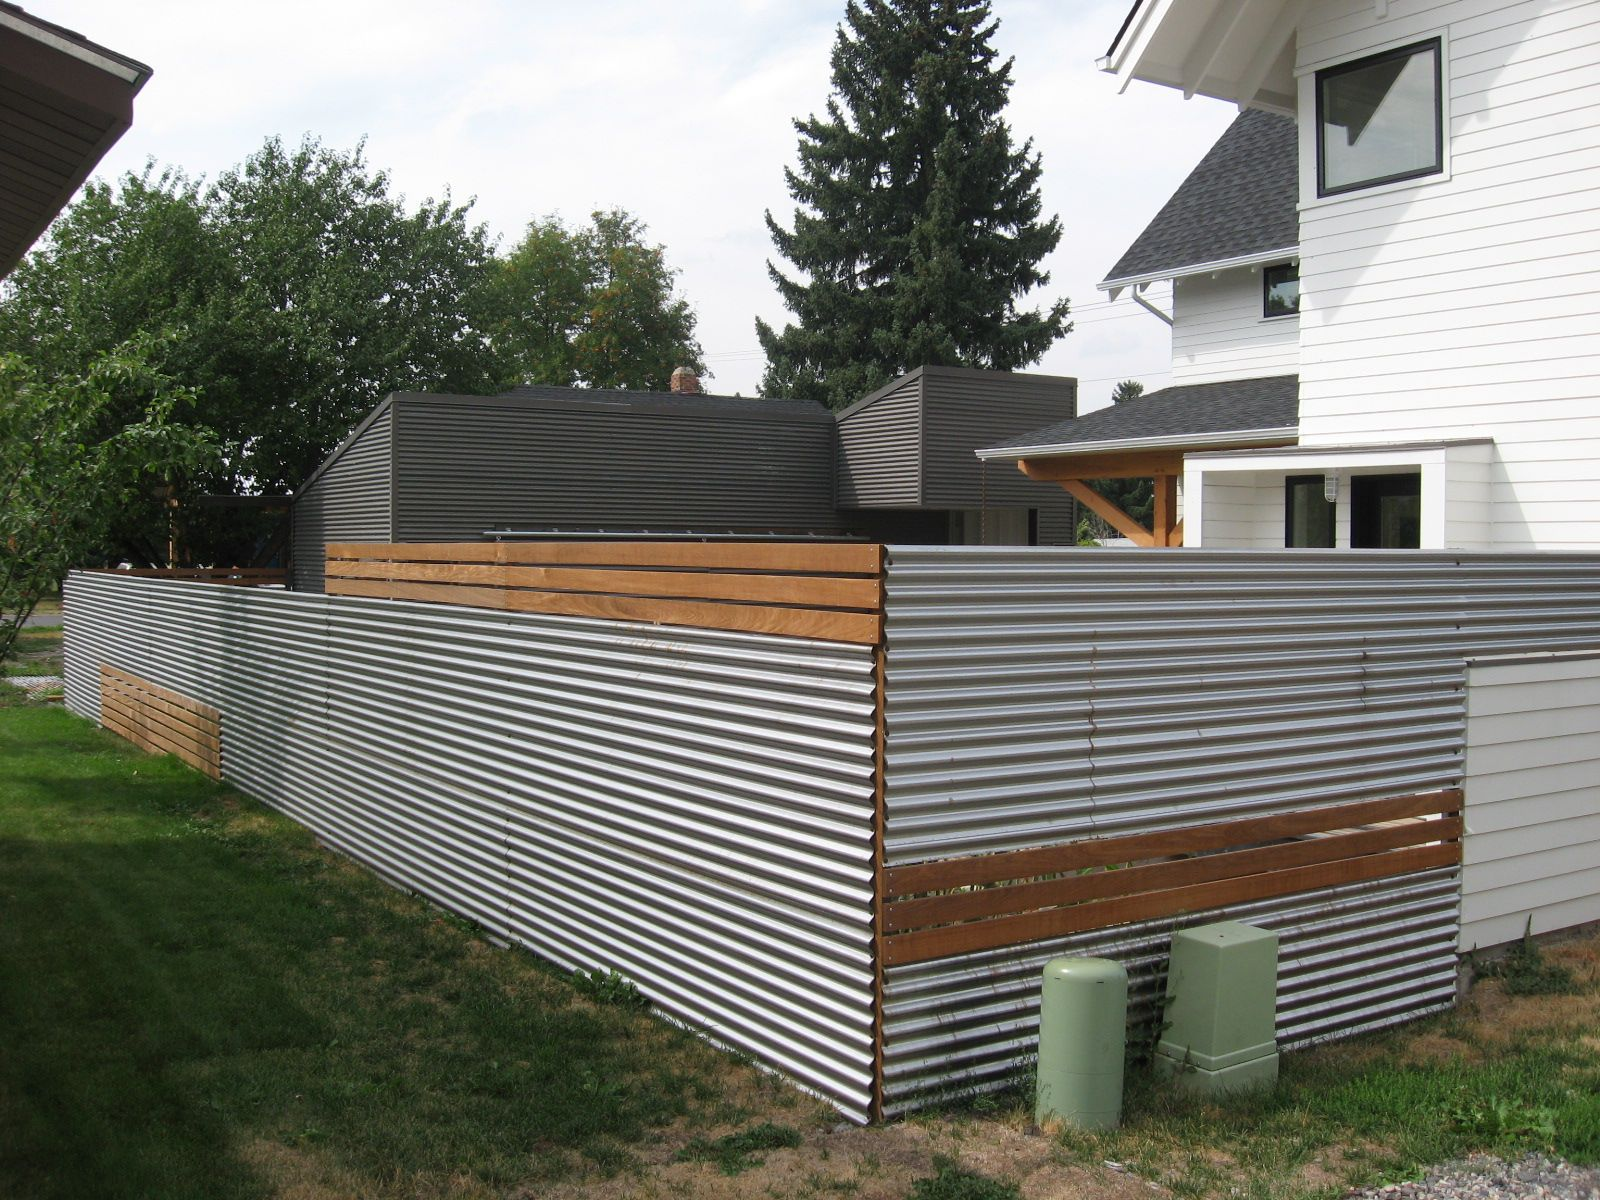 Modern Metal Fence Panels Good Use Of Inexpensive Materials Mixed In With